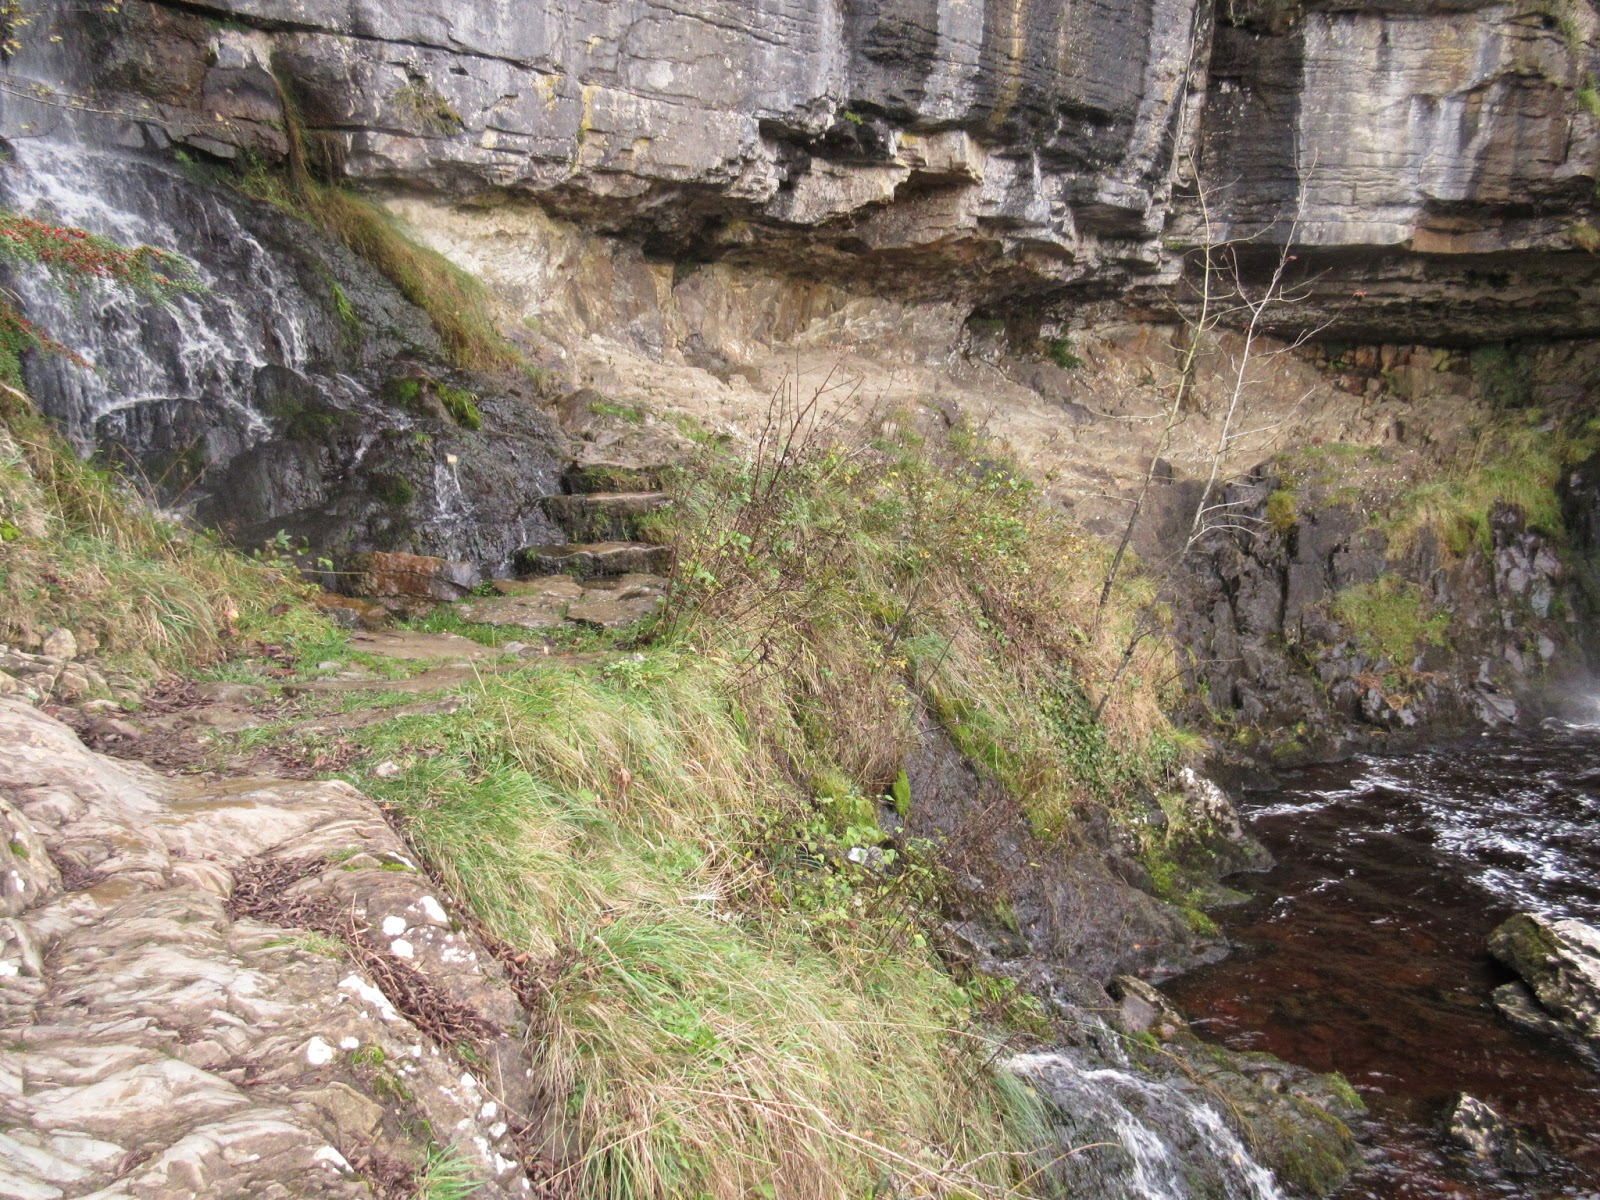 Vertically bedded Ingletonian rocks exposed beneath the unconformity at Thornton Force. Stephen Oldfield